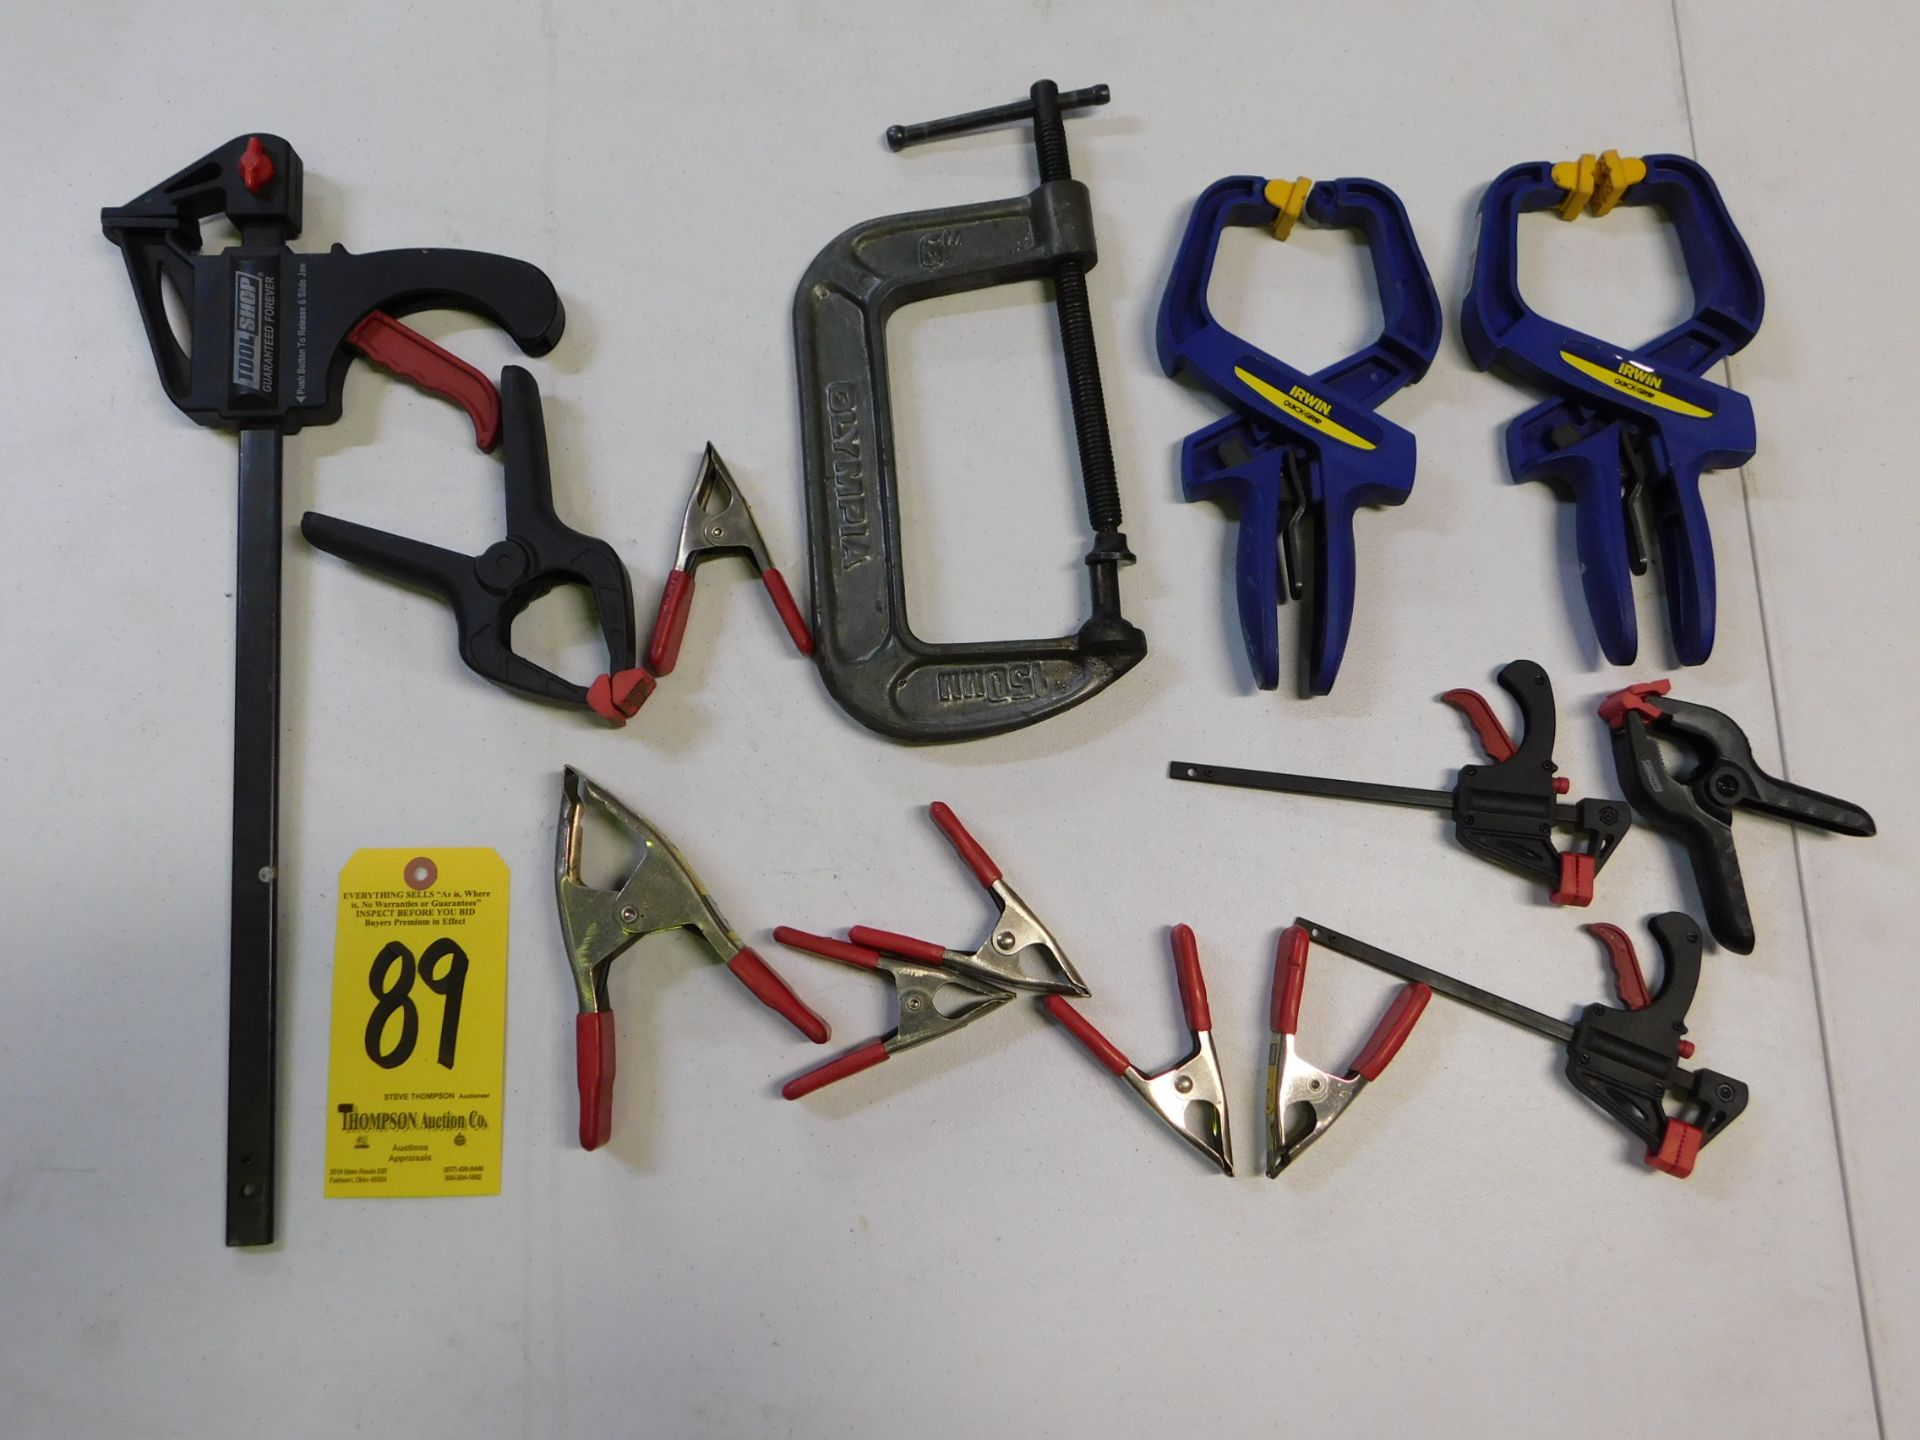 Spring Clamps, C-Clamp and Quick Adjust Clamps, Lot Location 3204 Olympia Dr. A, Lafayette, IN